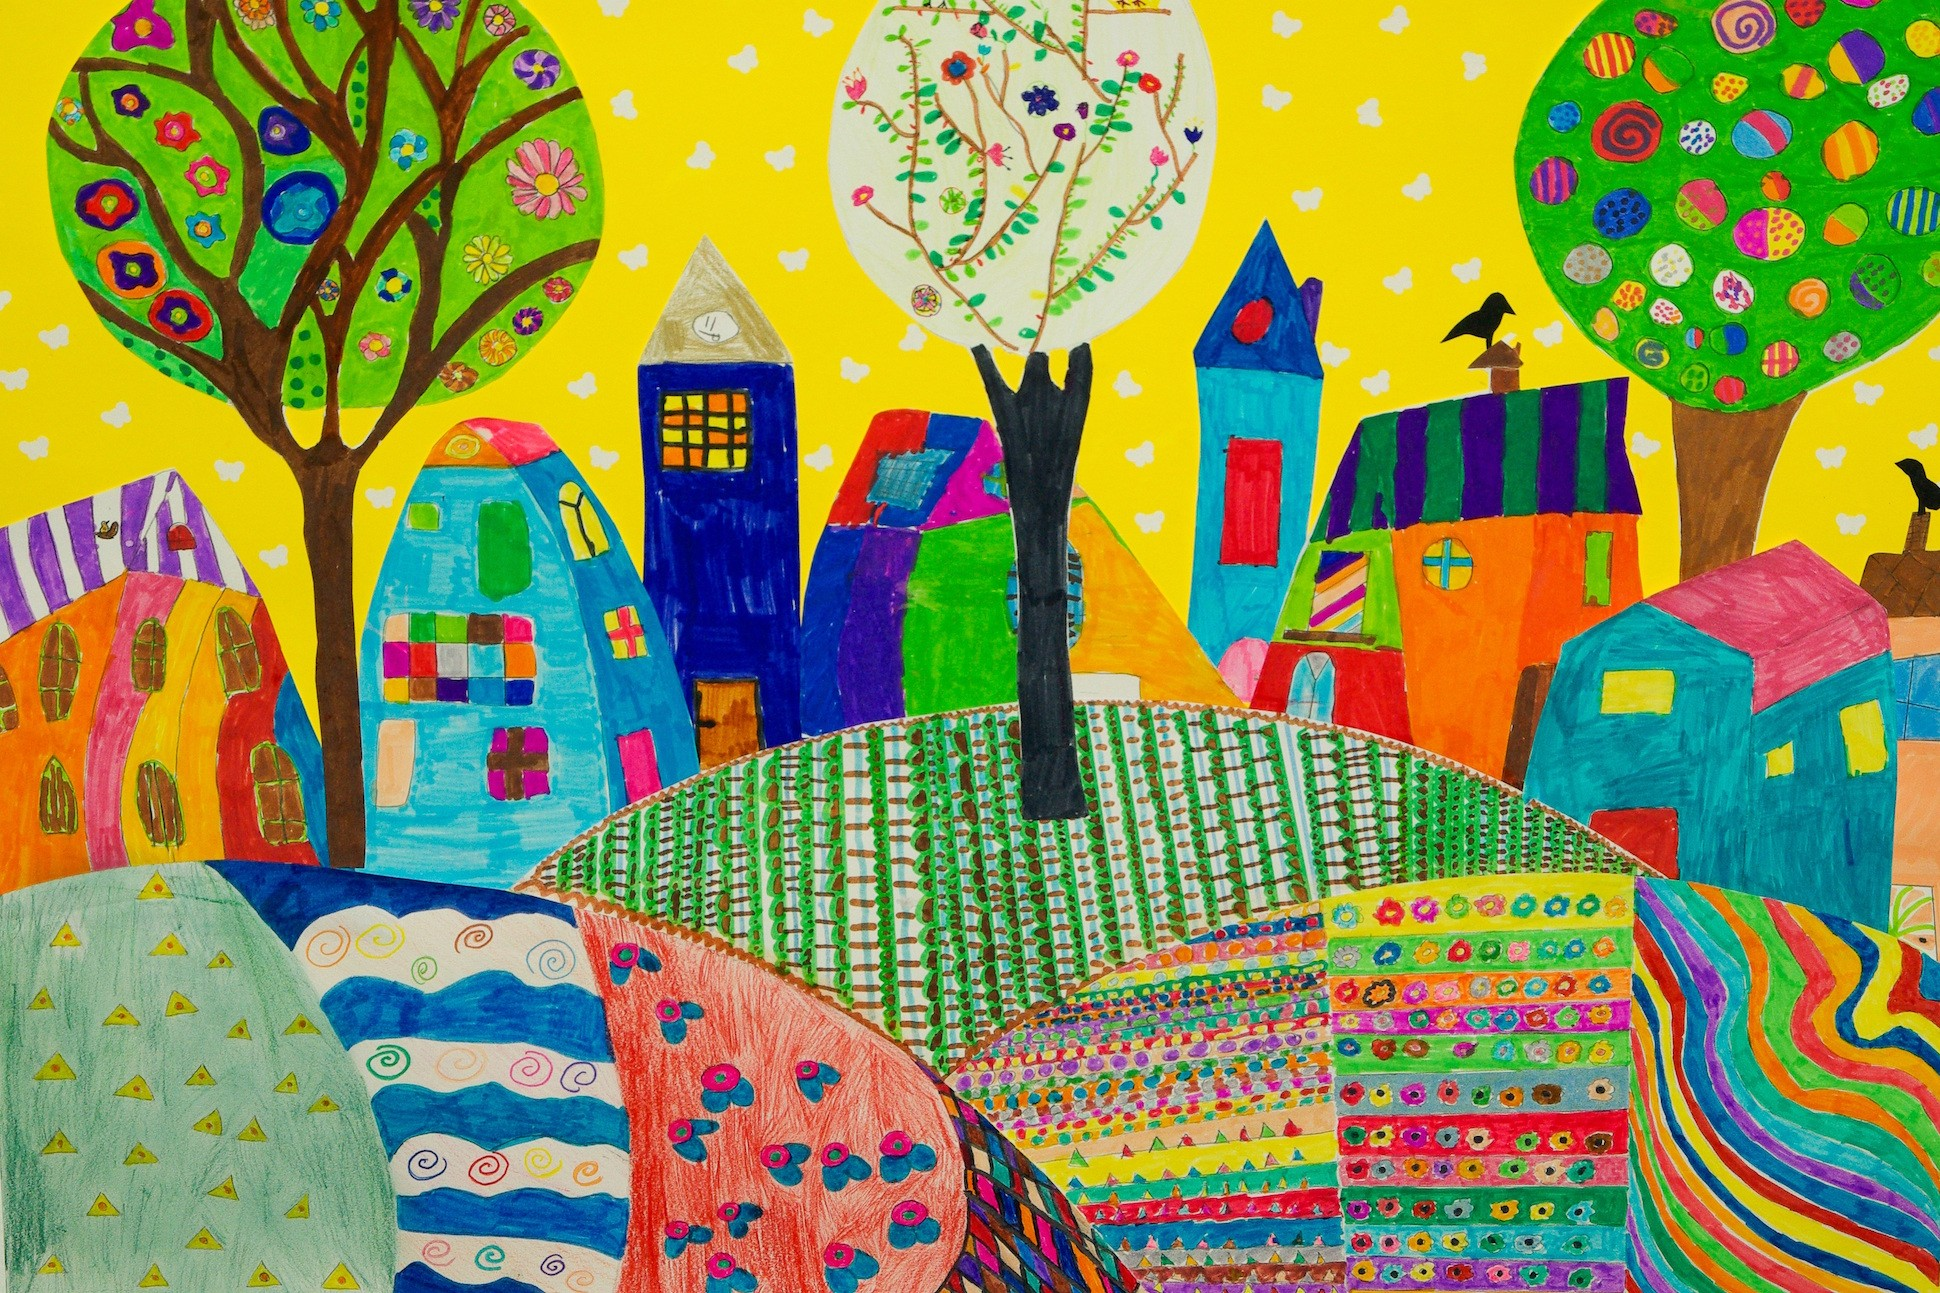 Image of colorful children's drawing, featuring several houses and a park.